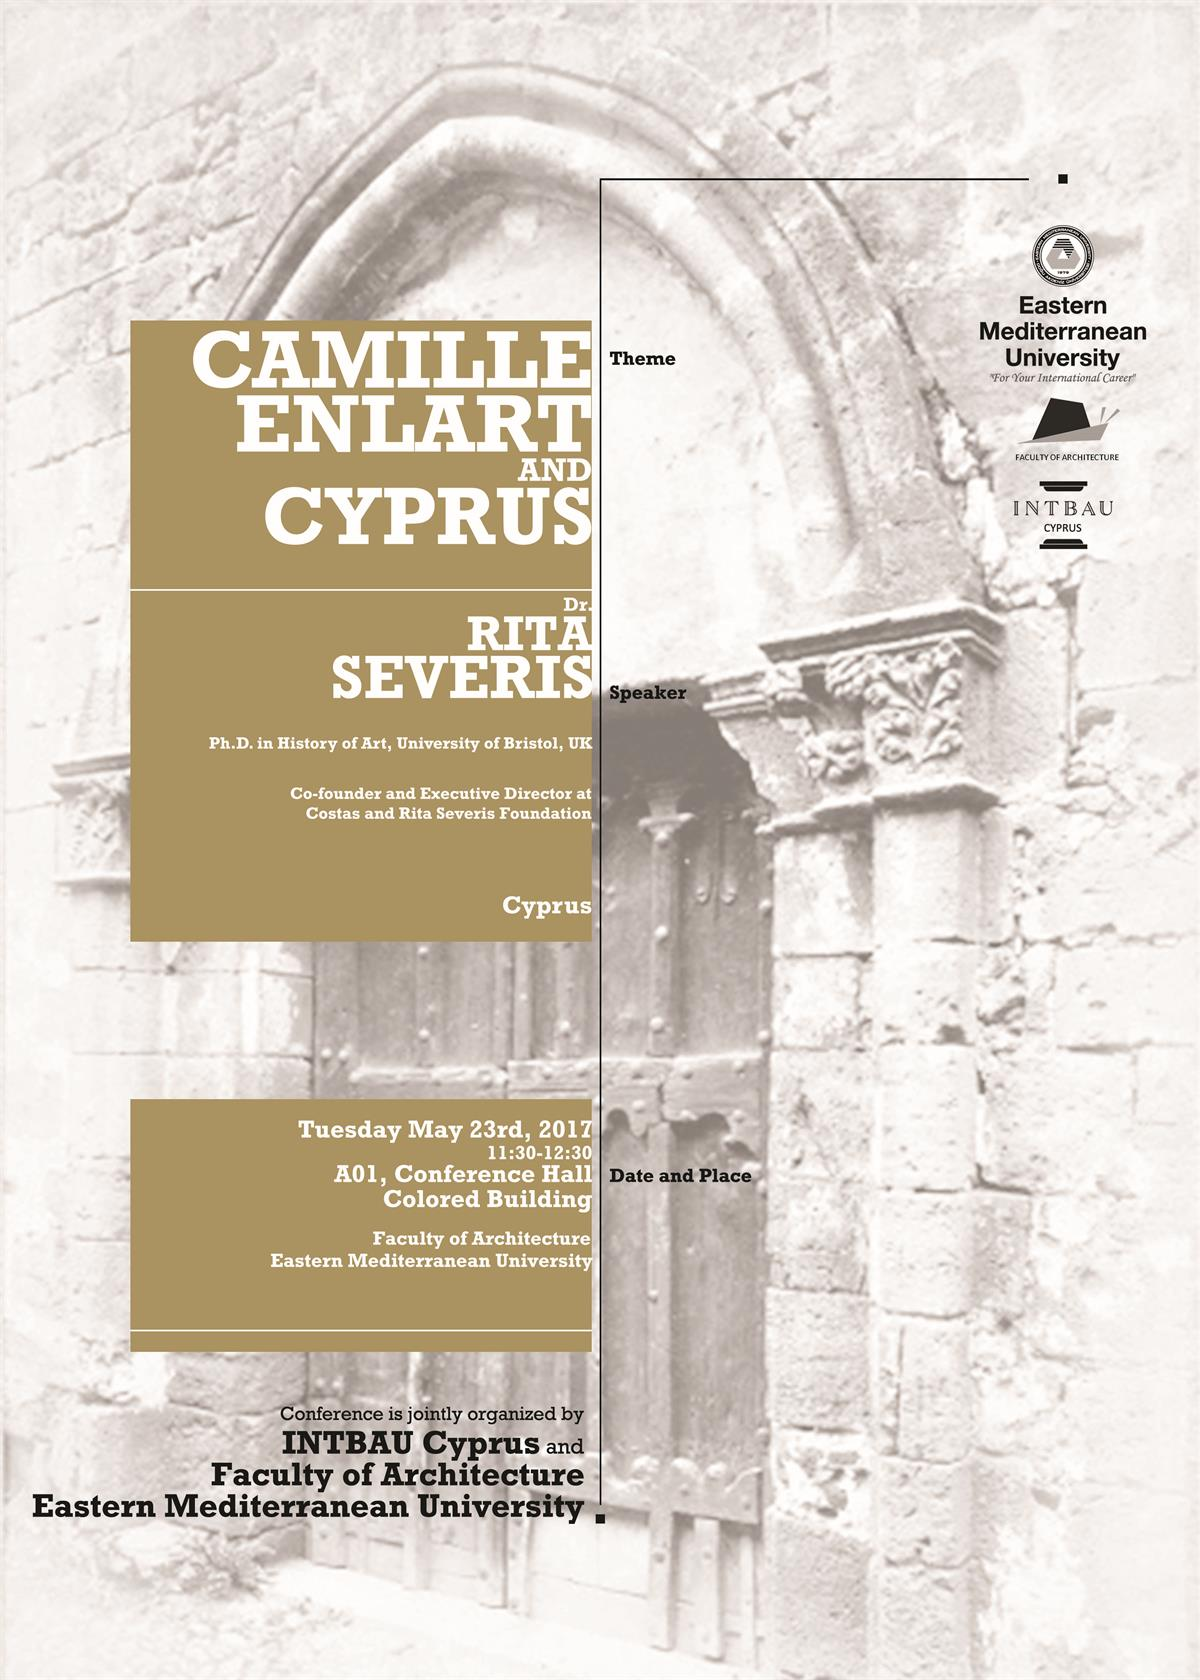 Camille Enlart and Cyprus